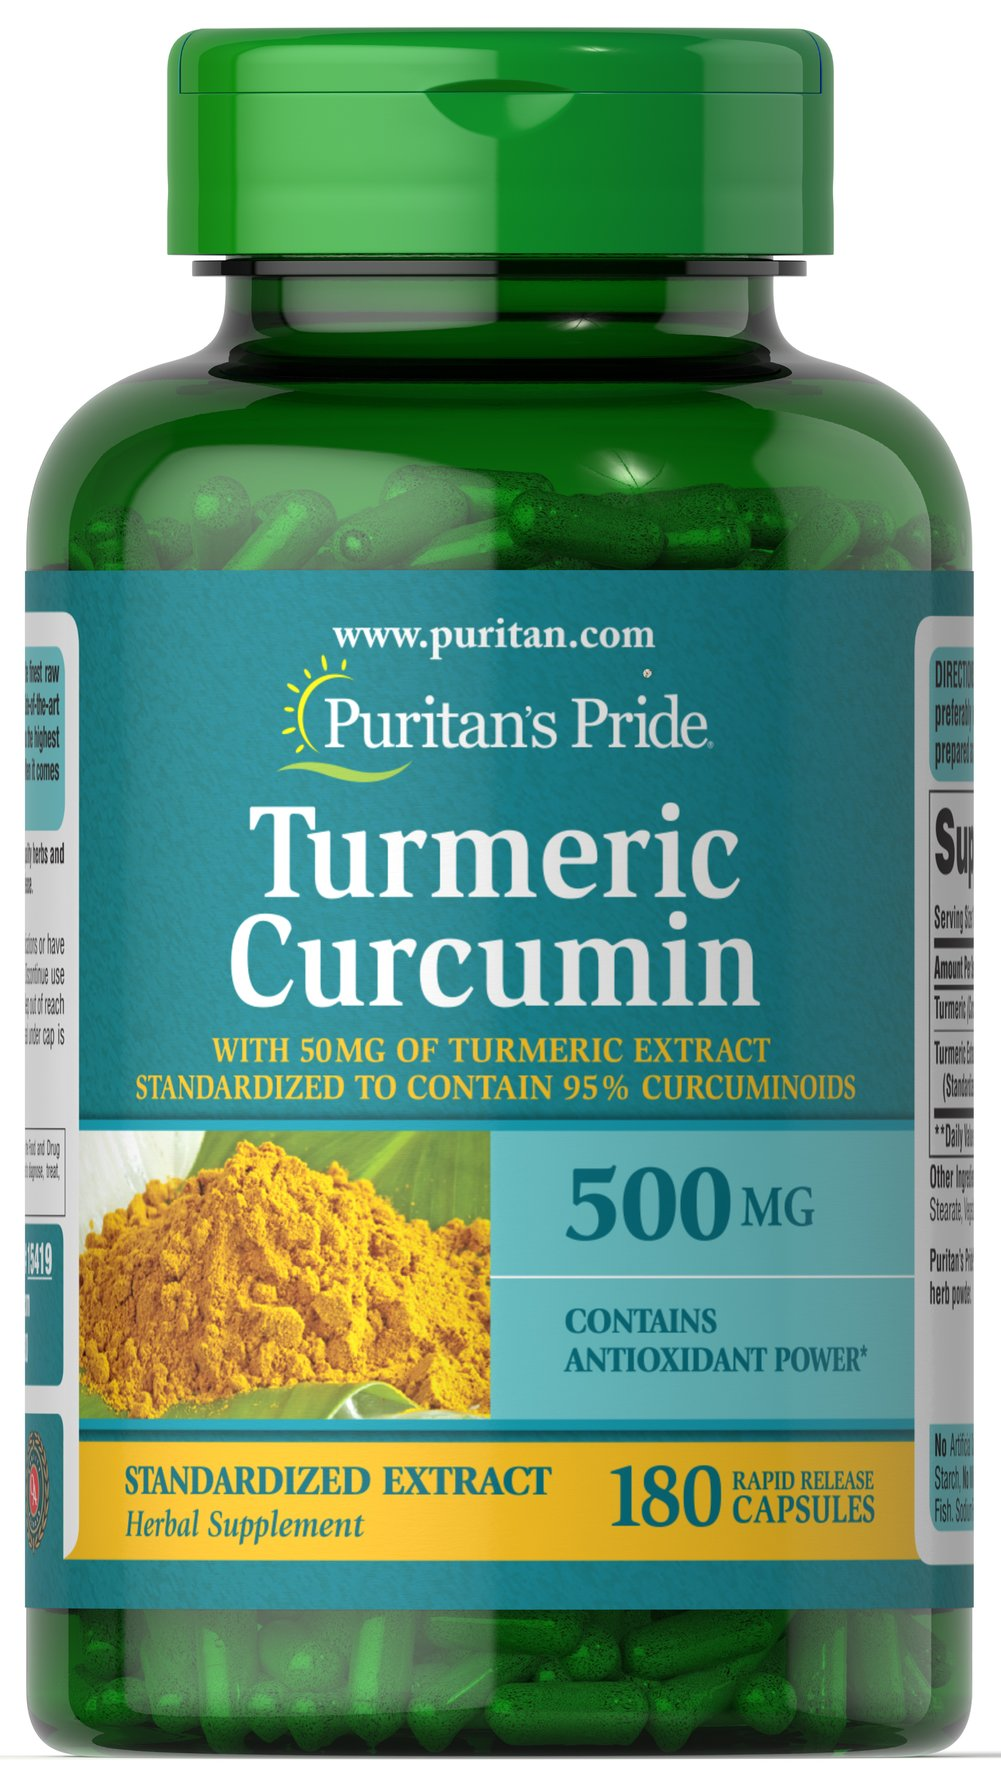 Turmeric Curcumin 450 mg <p>The active ingredients in Turmeric include beneficial flavonoids called Curcuminoids, which are plant-based antioxidants. **</p><p>Contains antioxidants</p> 180 Capsules 450 mg $19.99